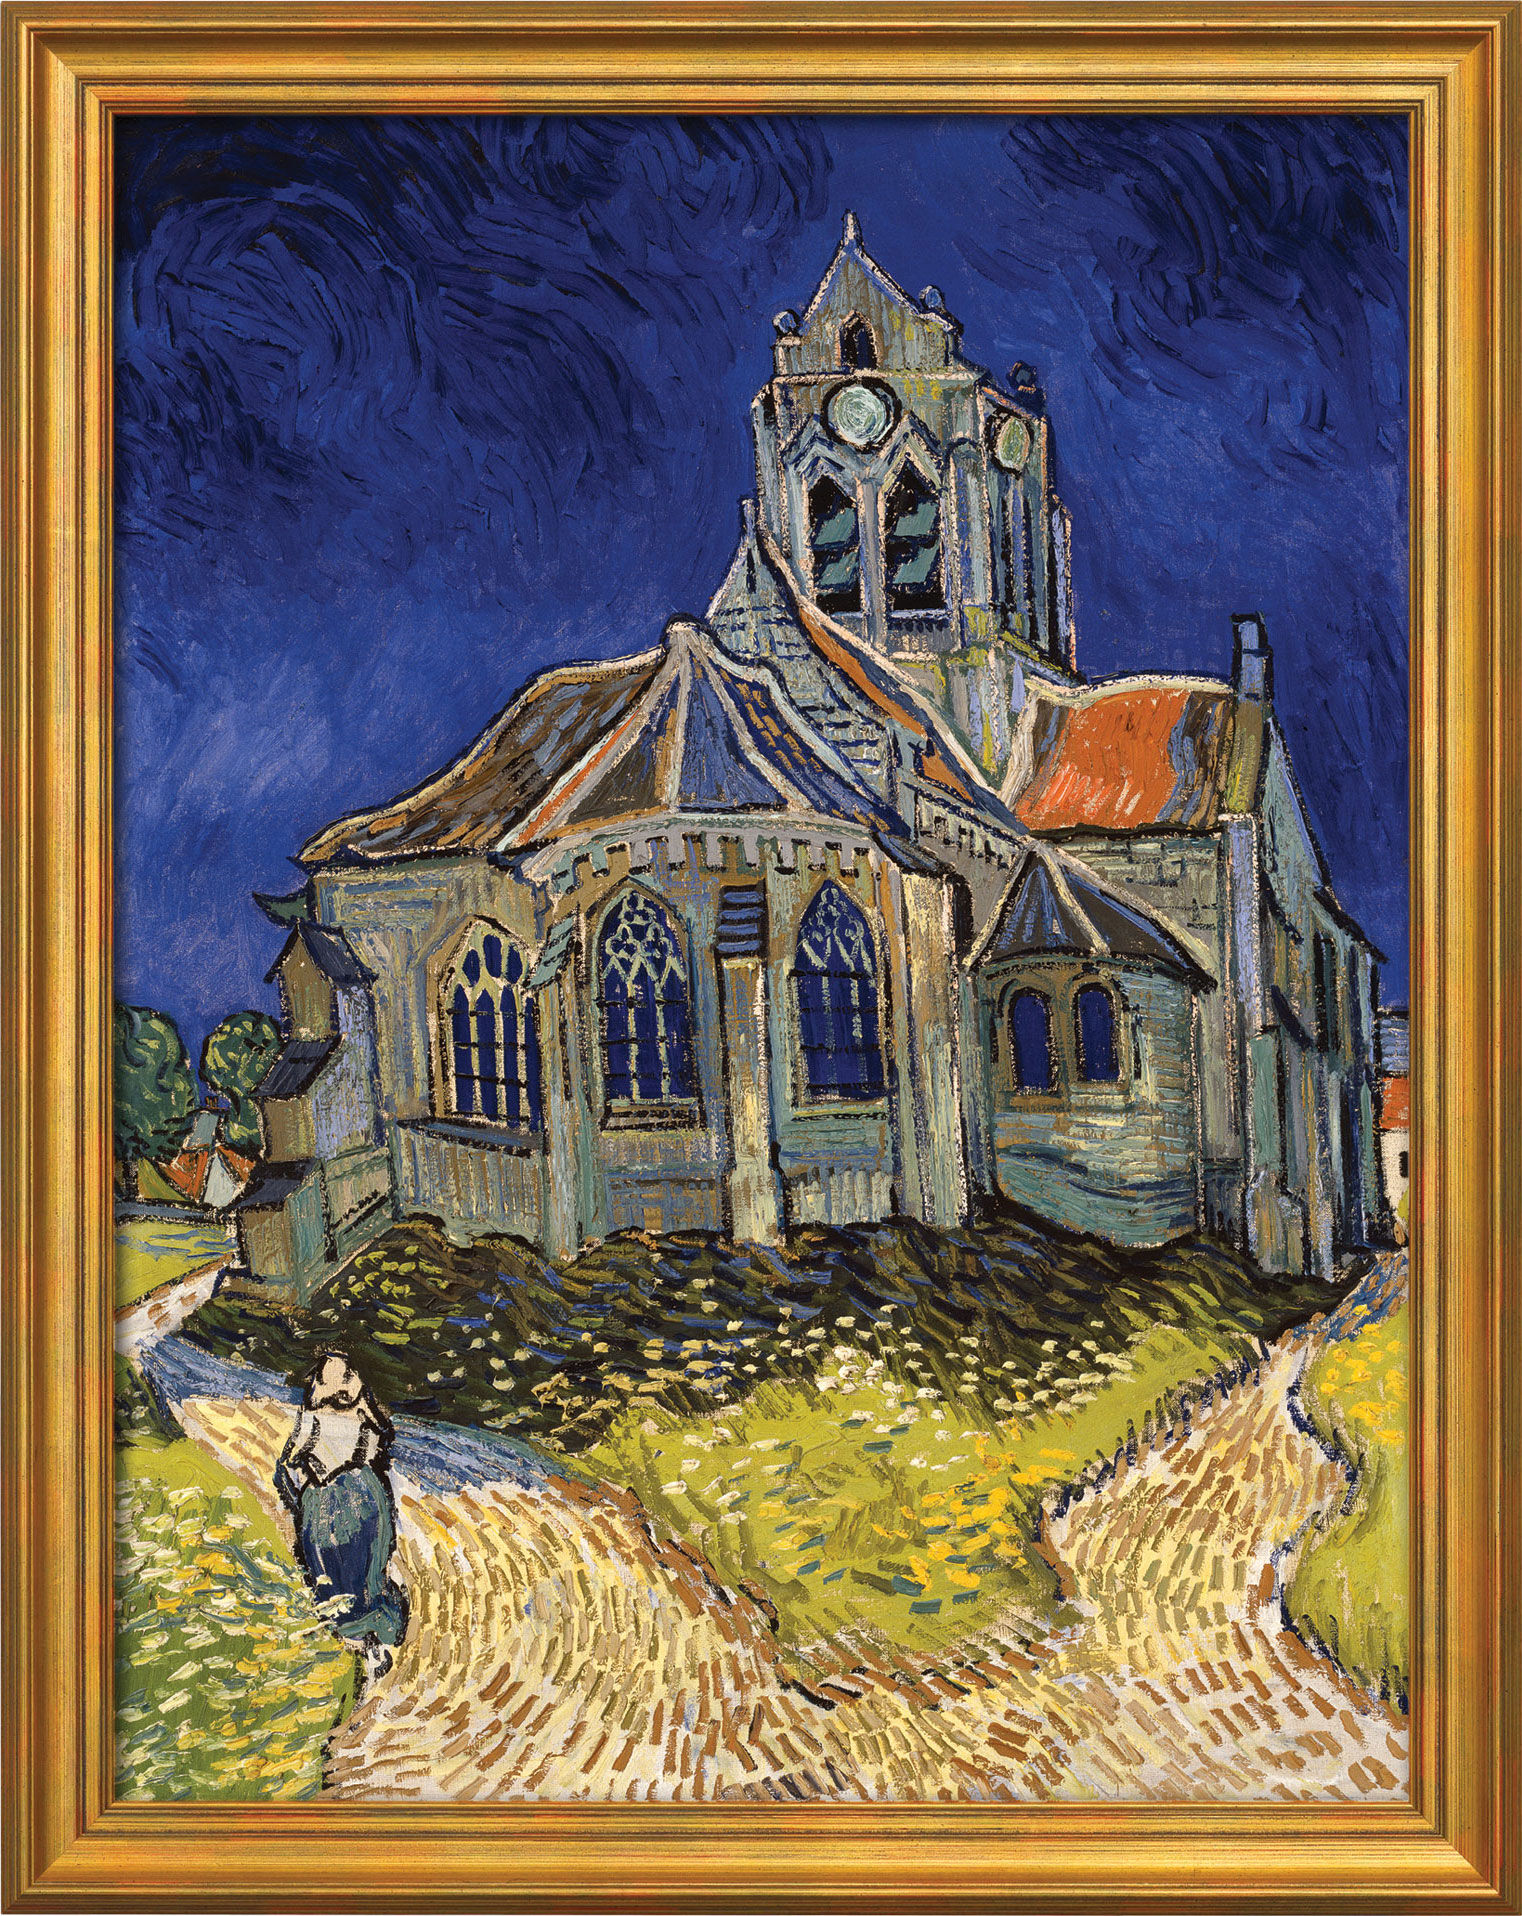 Van gogh the church at auvers sur oise painting vincent van gogh painting church in auvers sur oise 1890 in a frame reviewsmspy